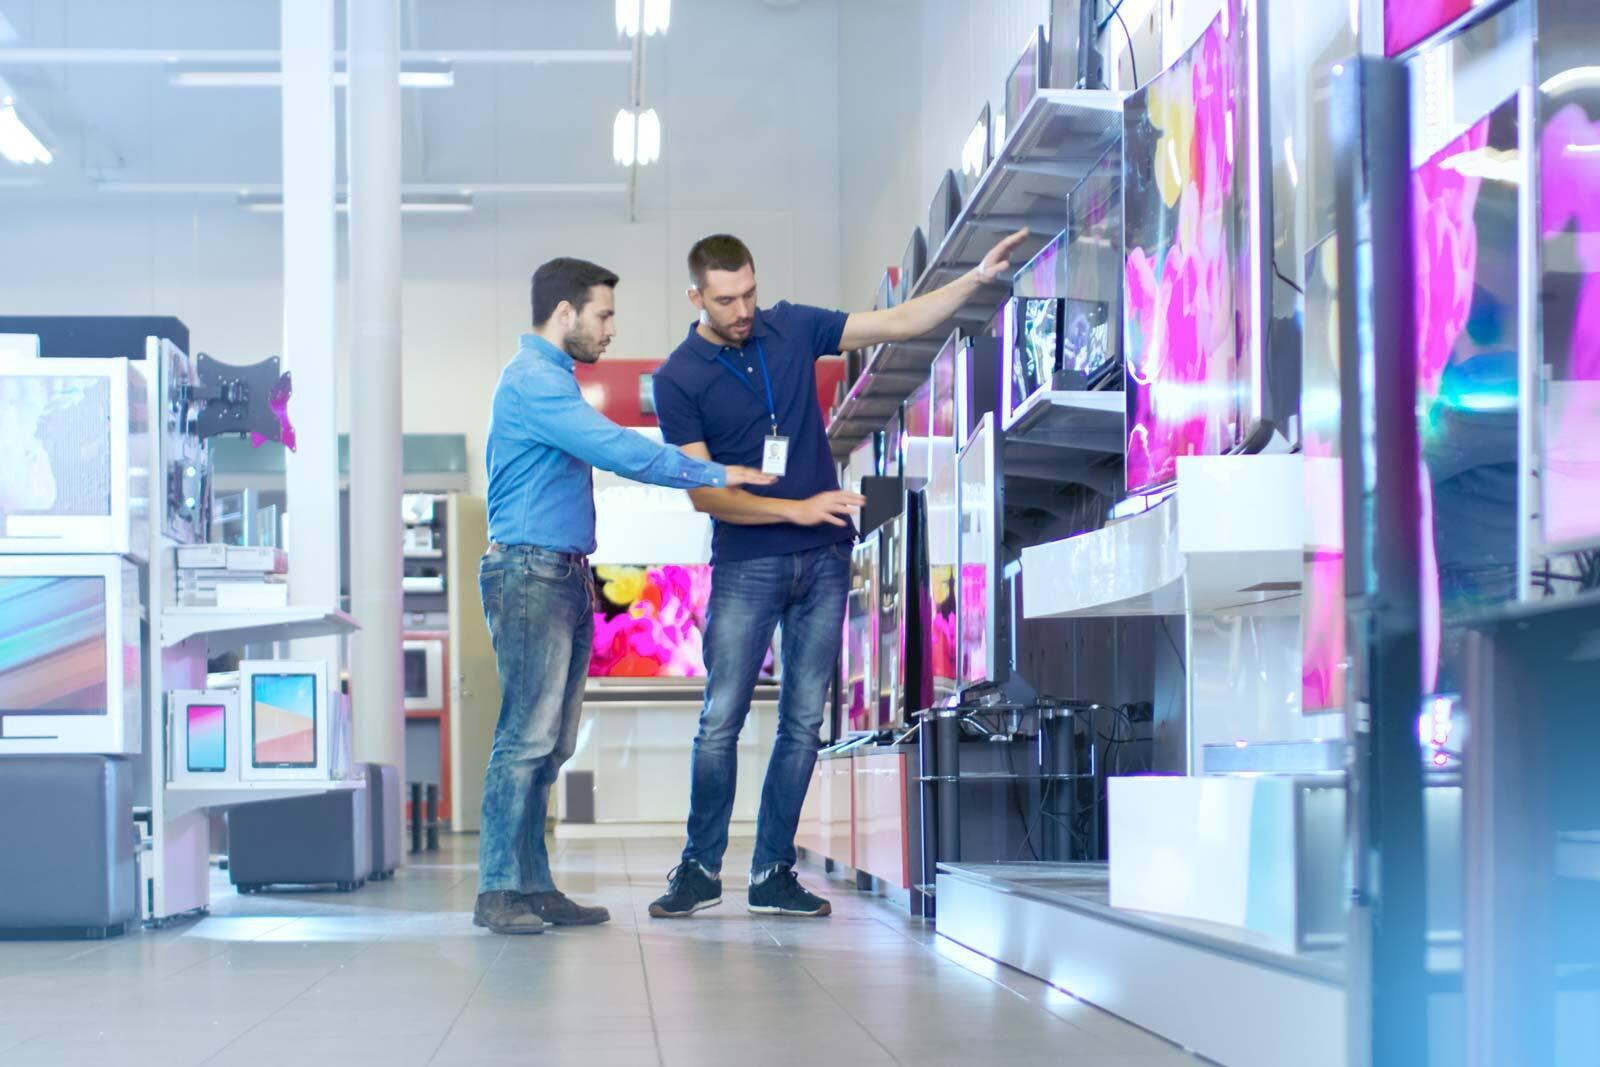 A man is shopping for TVs in a store and is talking to a salesperson.